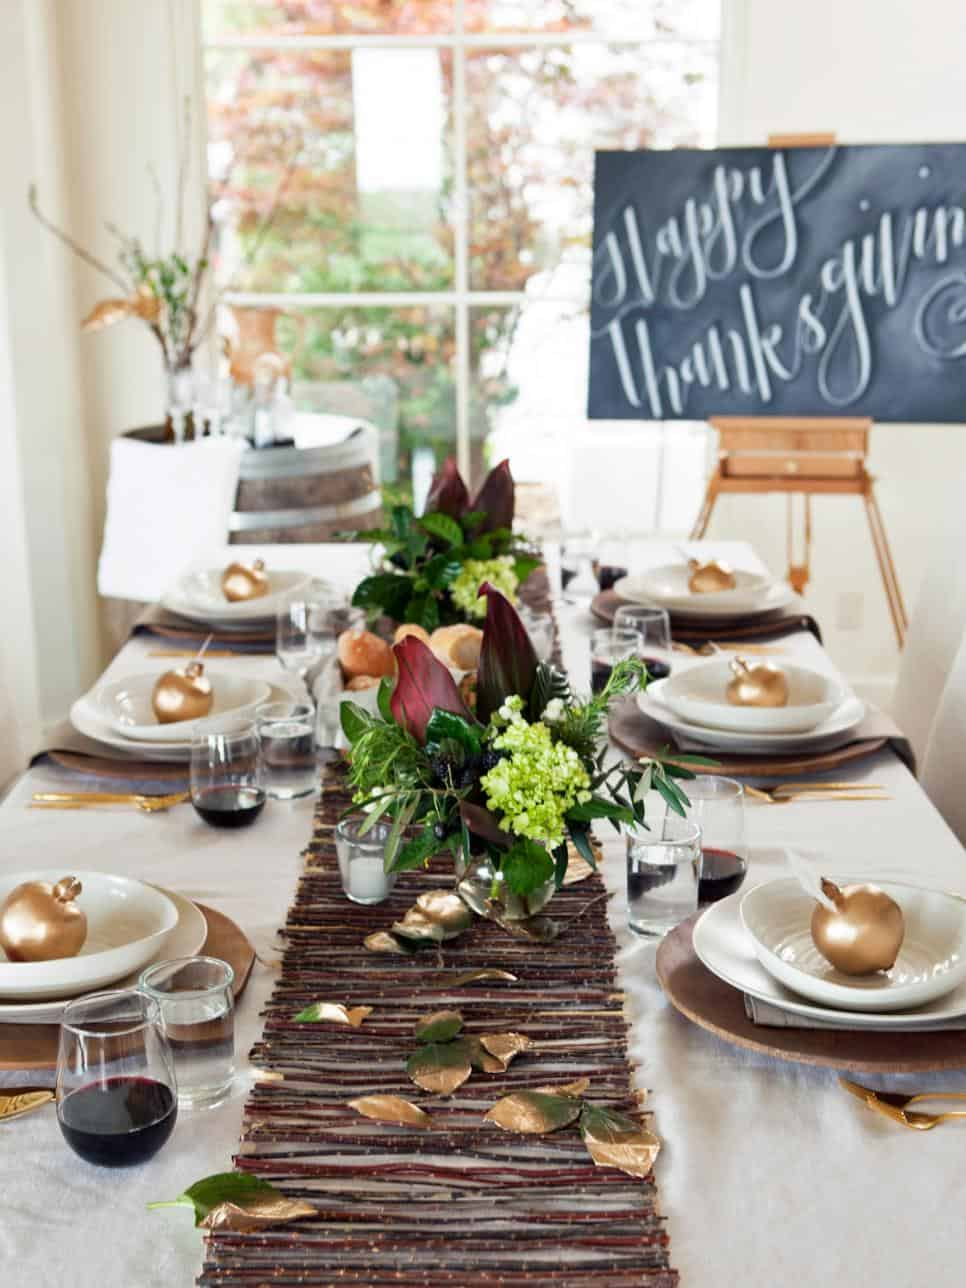 Tabletop Decor Ideas - Trendir